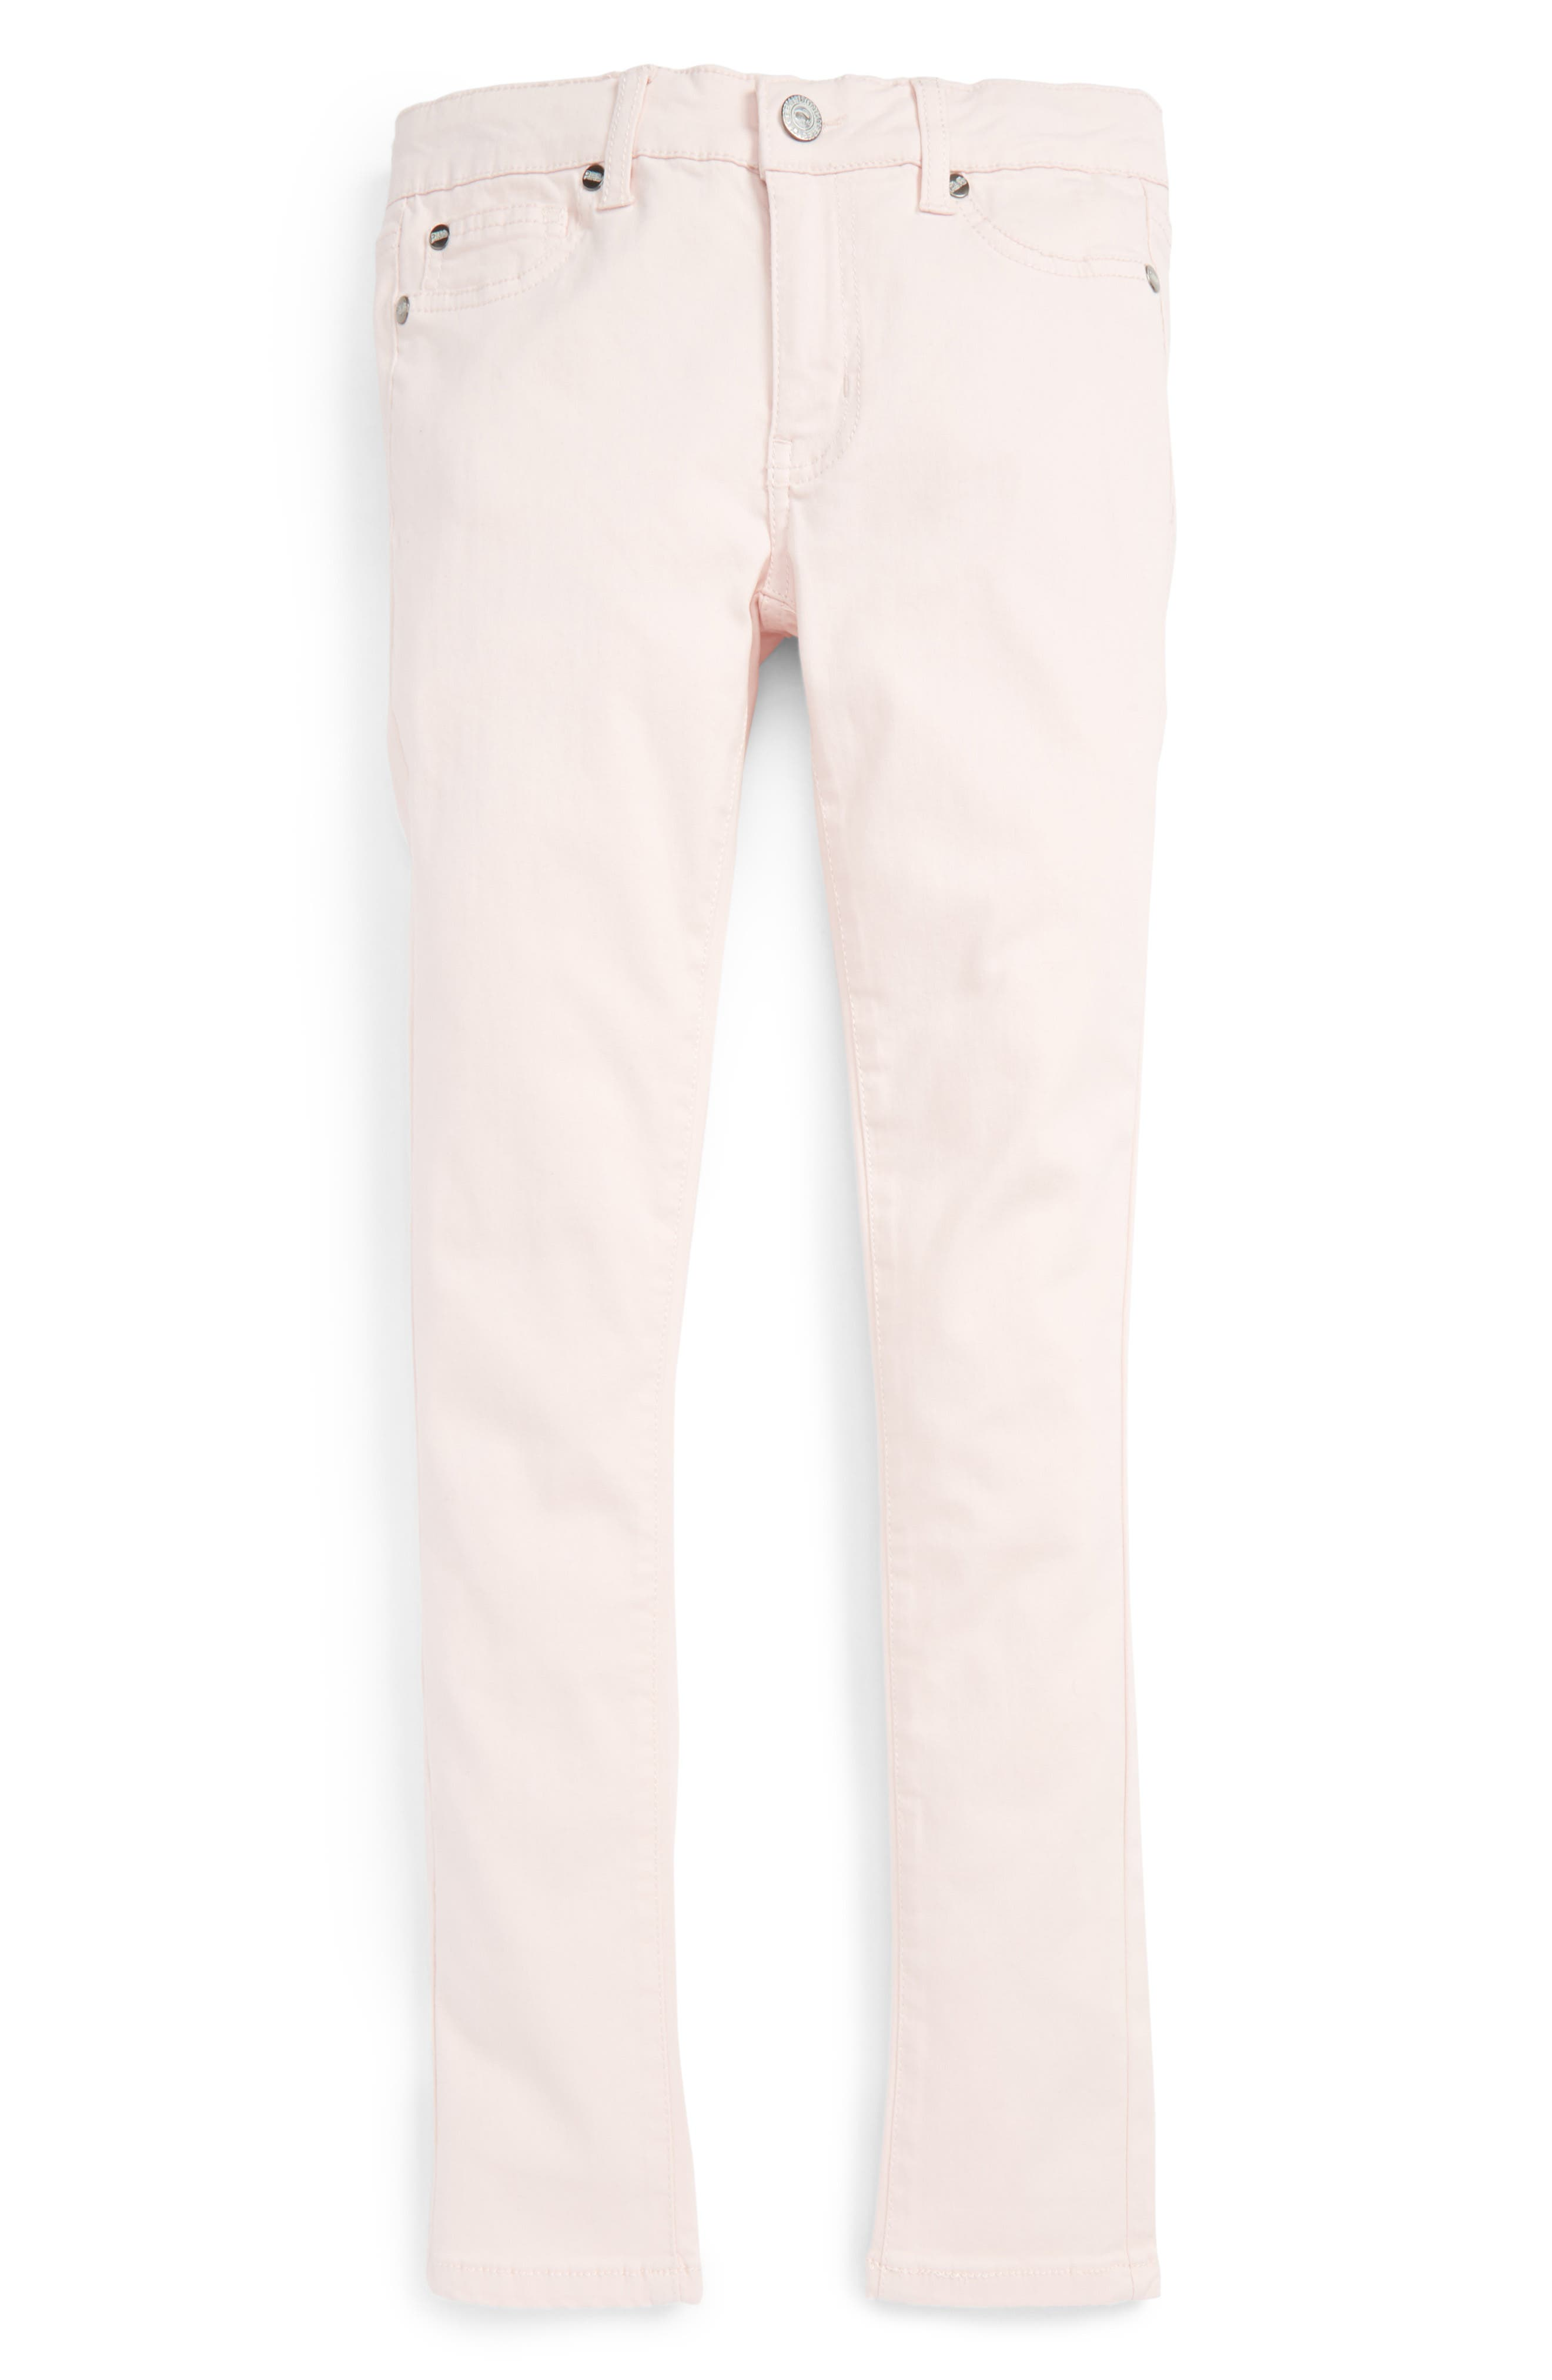 Peek Taylor Skinny Jeans (Toddler Girls, Little Girls & Big Girls)